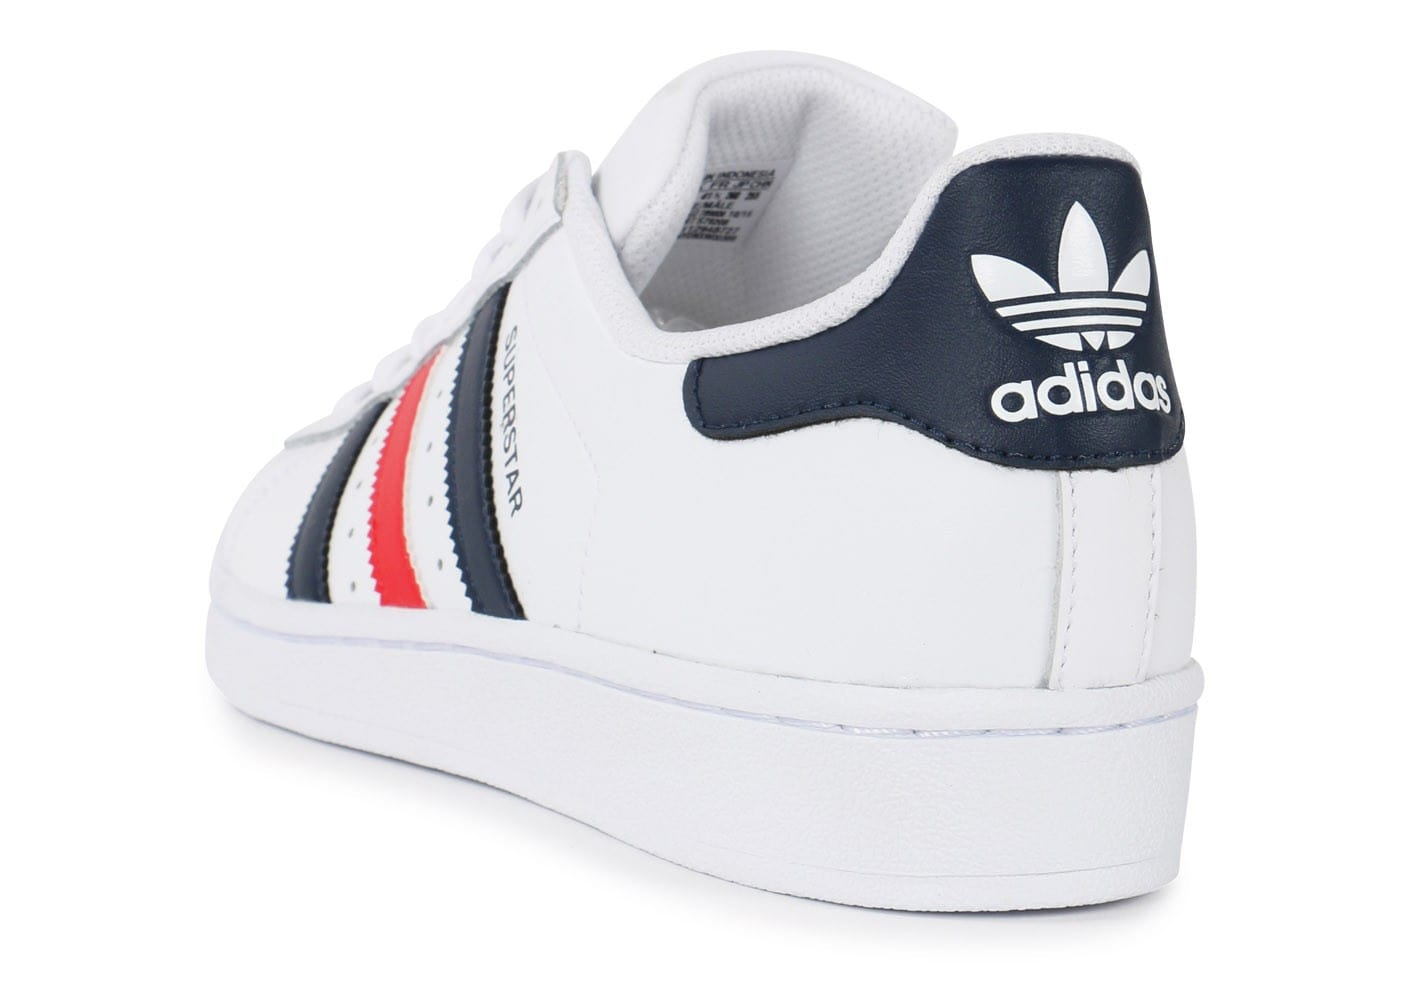 adidas superstar foundation bleu blanc rouge chaussures homme chausport. Black Bedroom Furniture Sets. Home Design Ideas